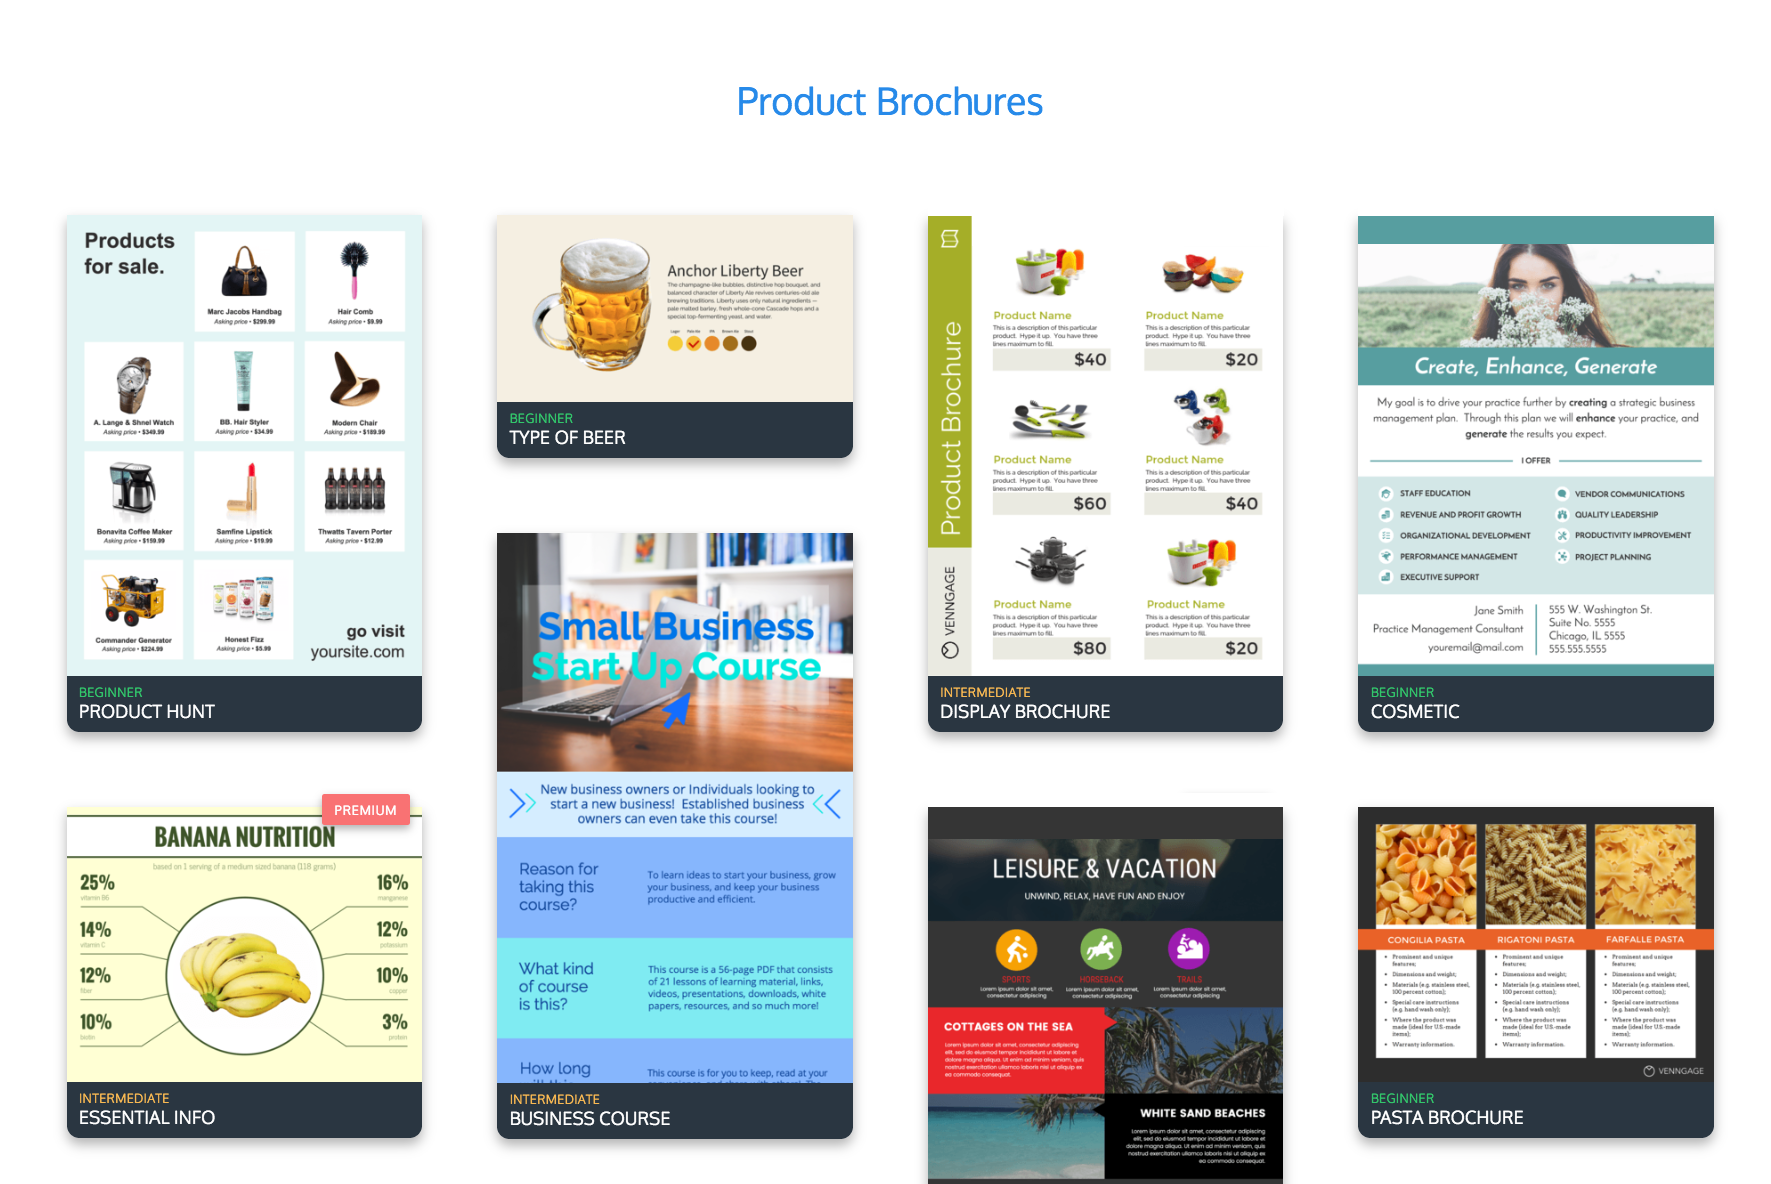 Online Brochure Maker - Make Your Own Brochure With Venngage